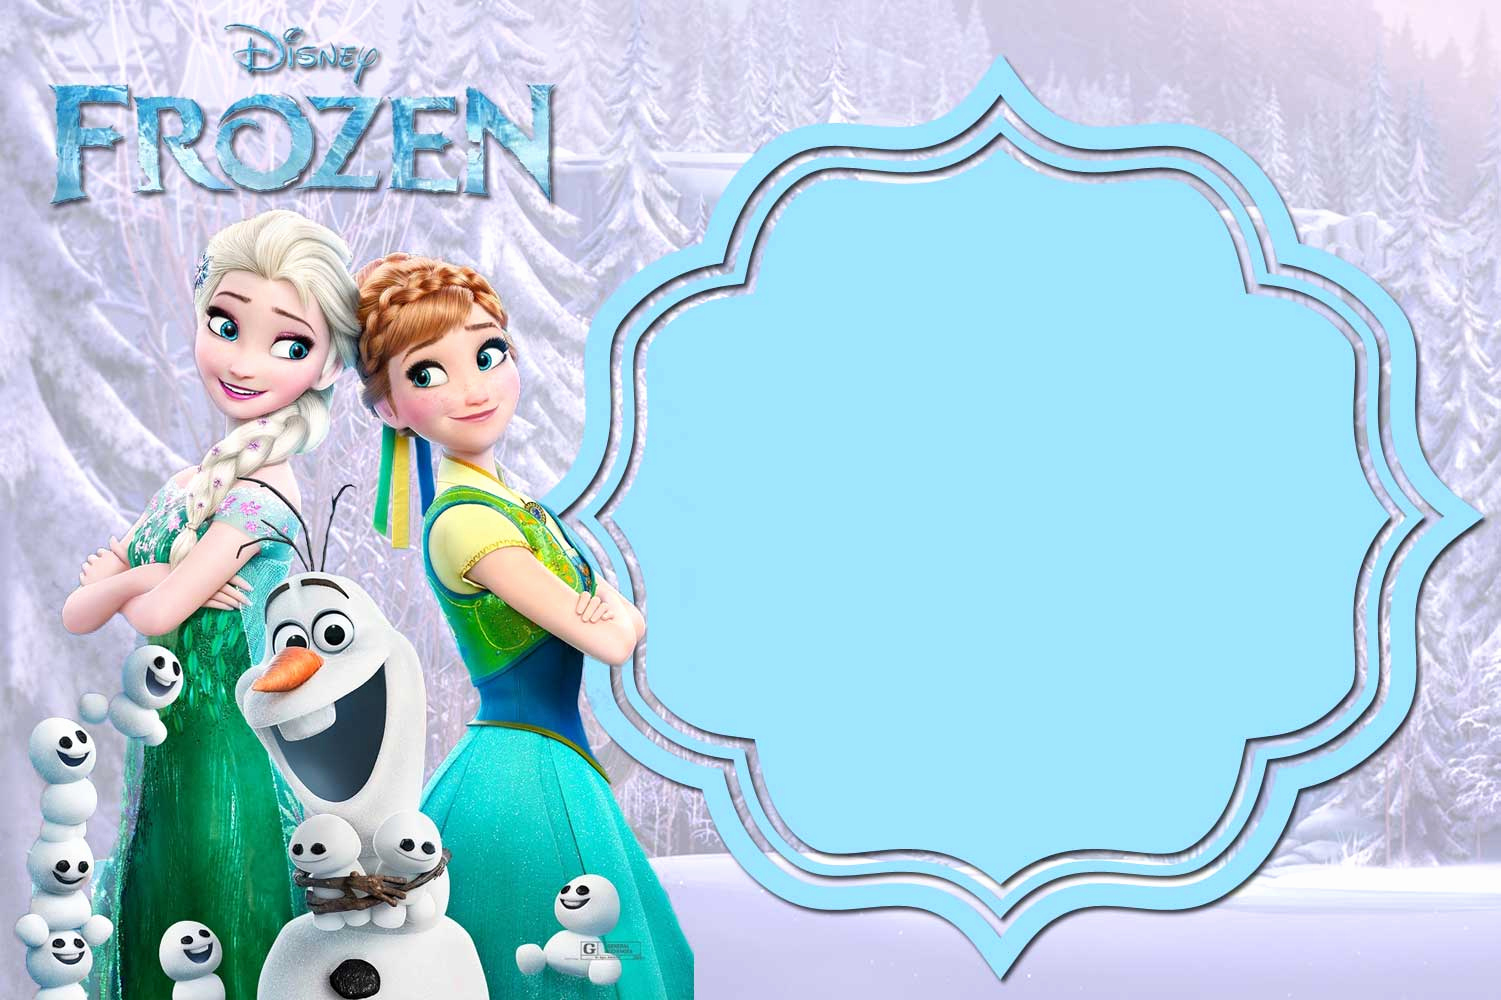 Frozen Birthday Invitation Templates Lovely Free Printable Frozen Anna and Elsa Invitation Templates